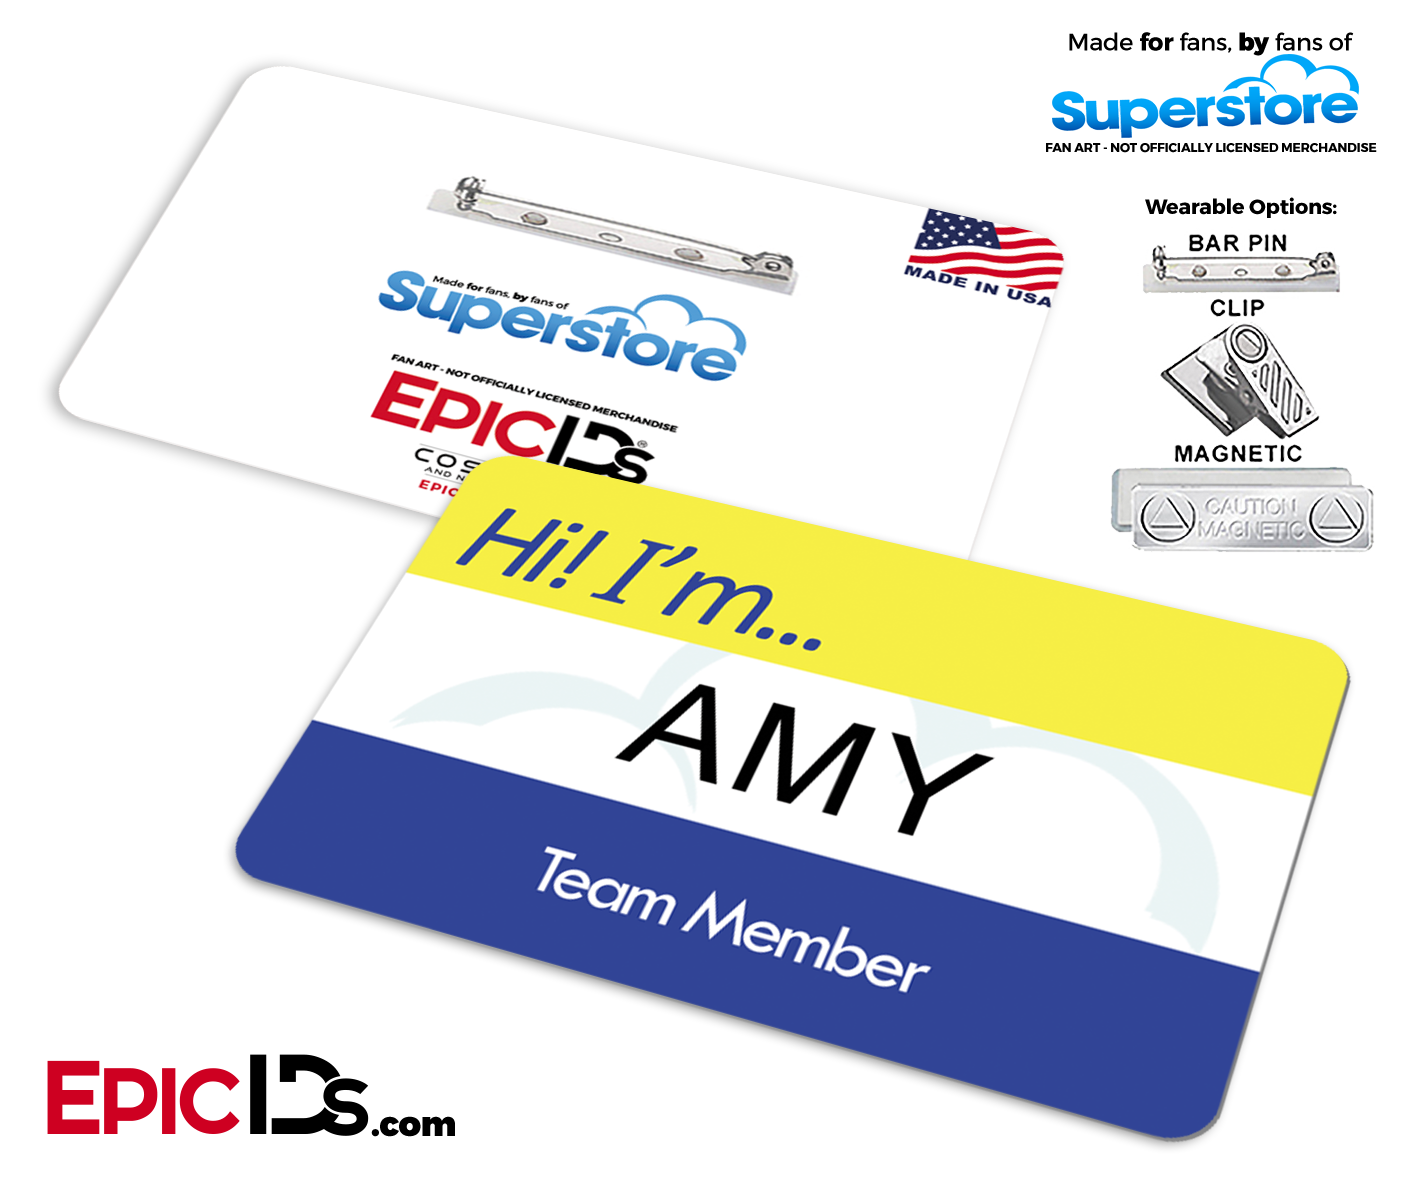 Employee name badge wearable. Superstore clip amy png black and white stock